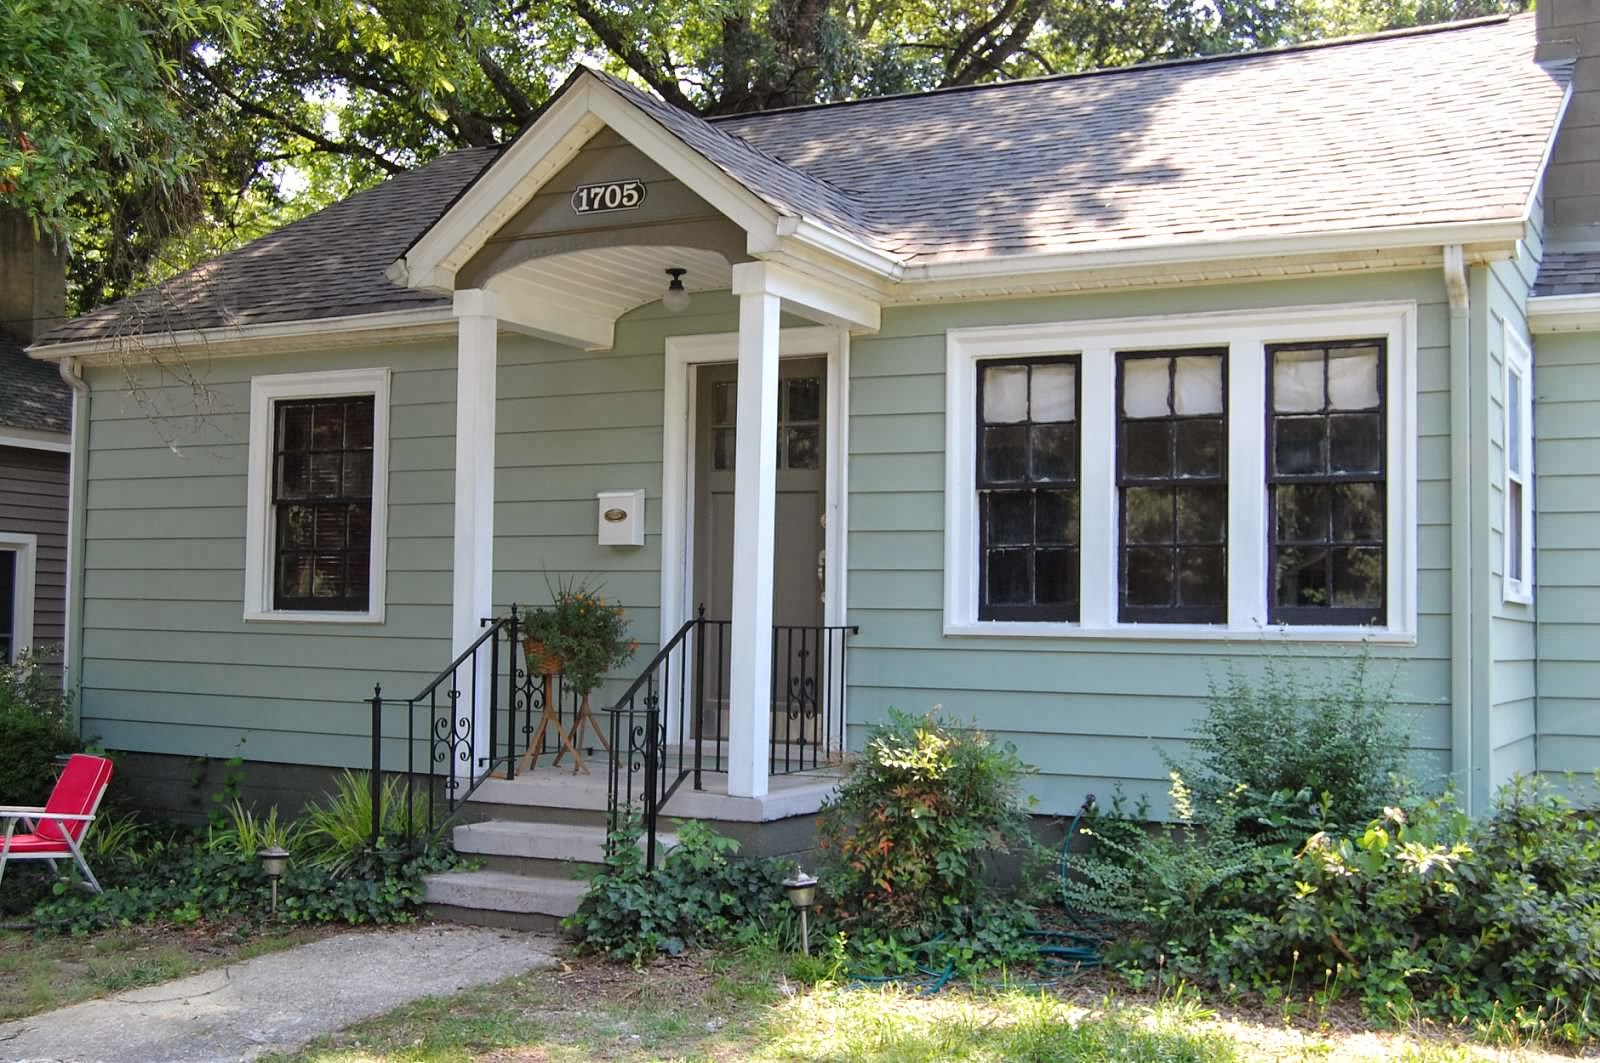 Curbside Trash Pick Up Indianapolis in addition 63425 additionally Renovation Portfolio Small 1940s additionally Renovation Portfolio Small 1940s as well Add Room Condo Bathroom. on kitchen tear out bathroom demolition